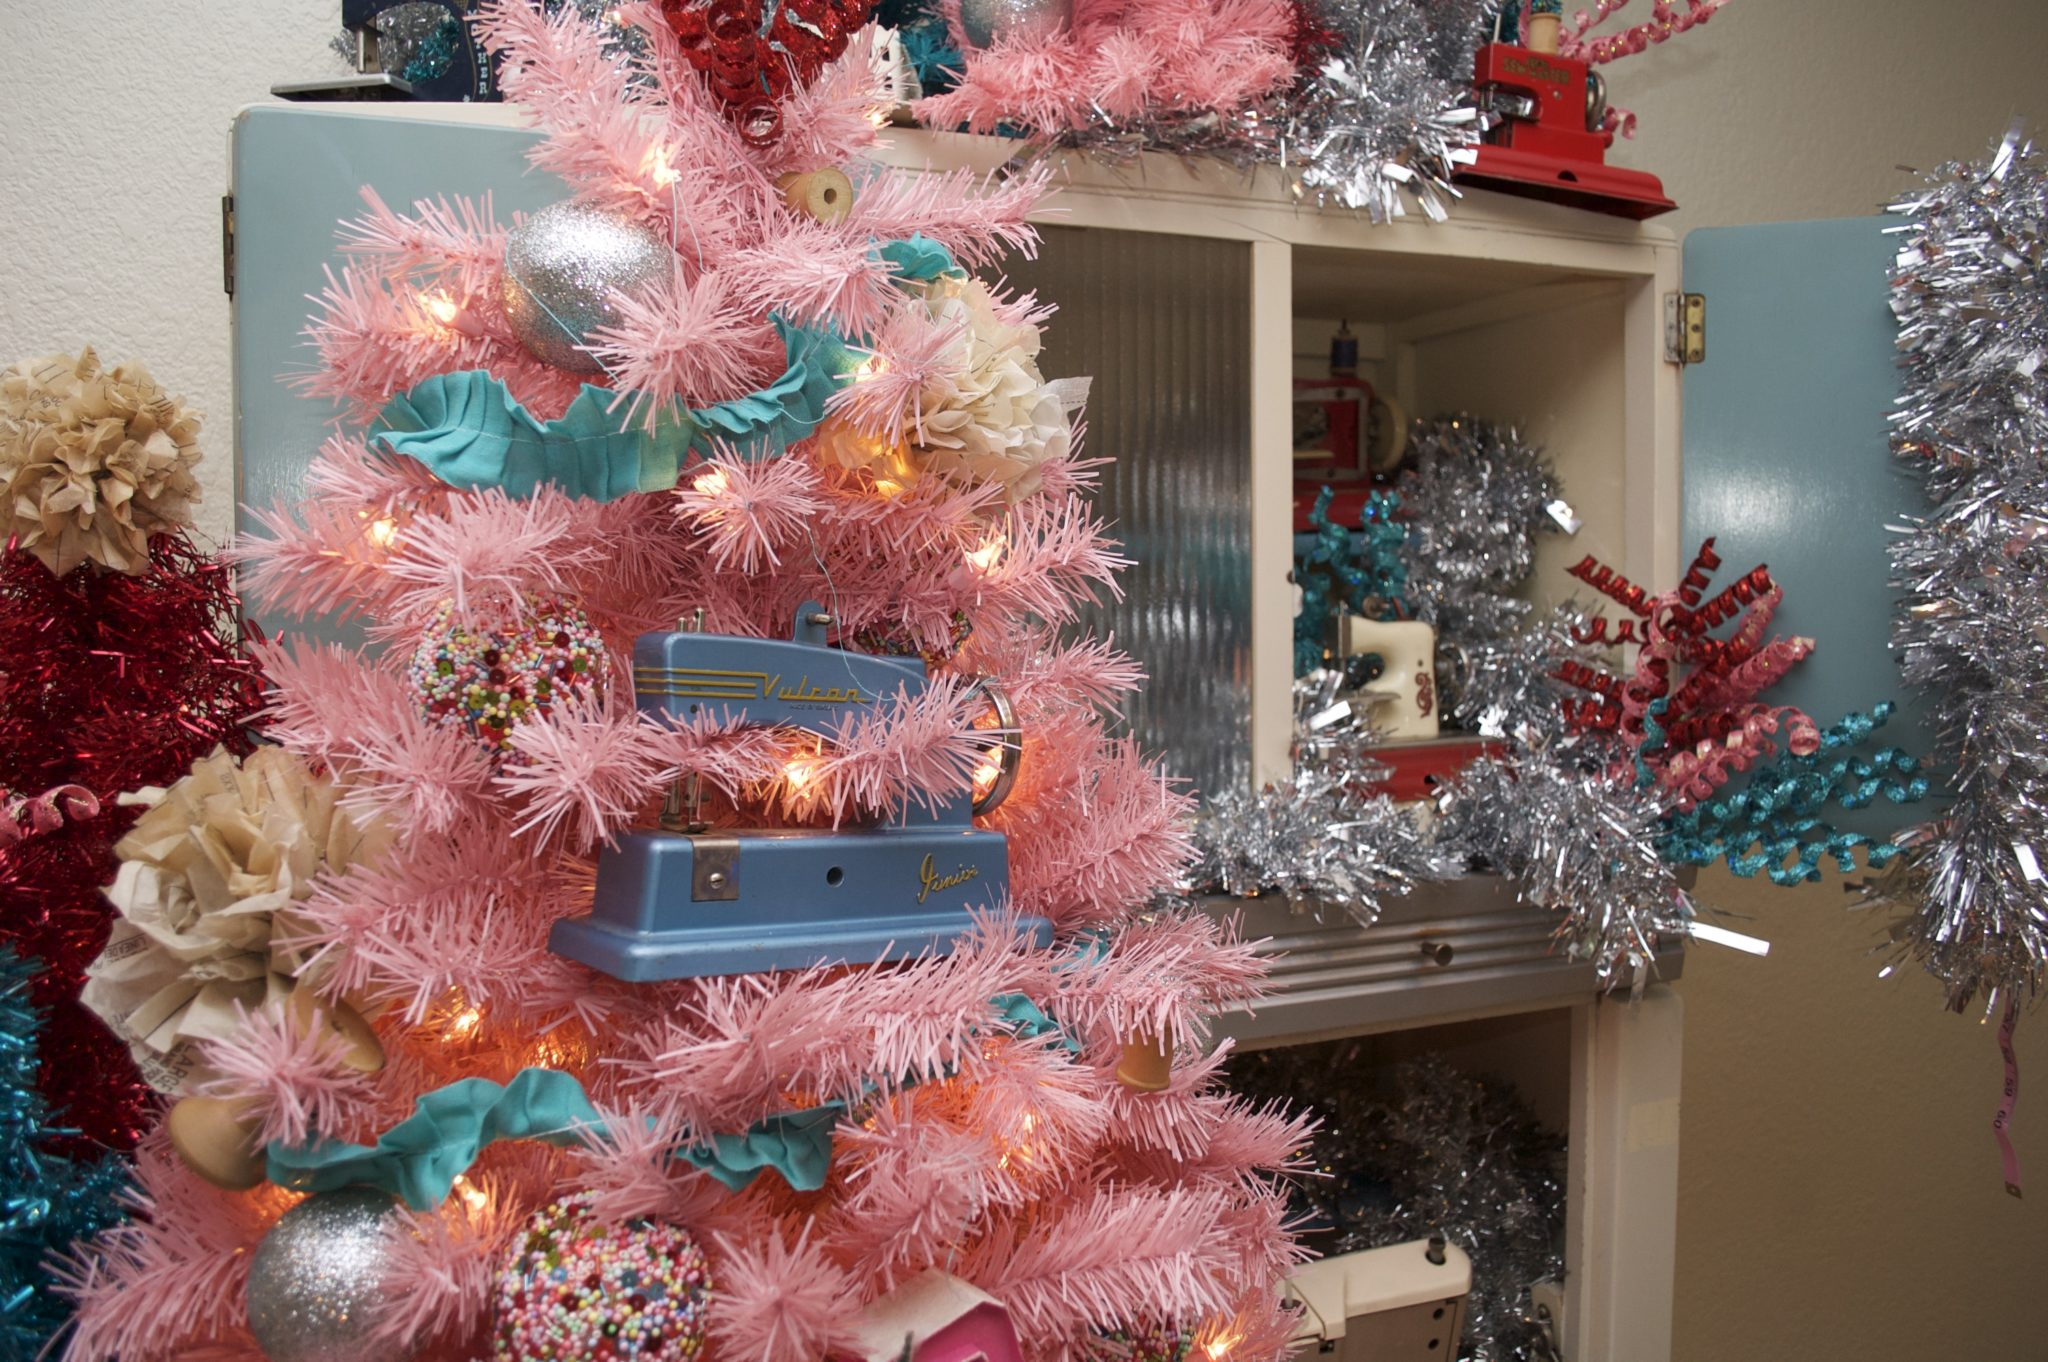 How to decorate a tree with a sewing theme.